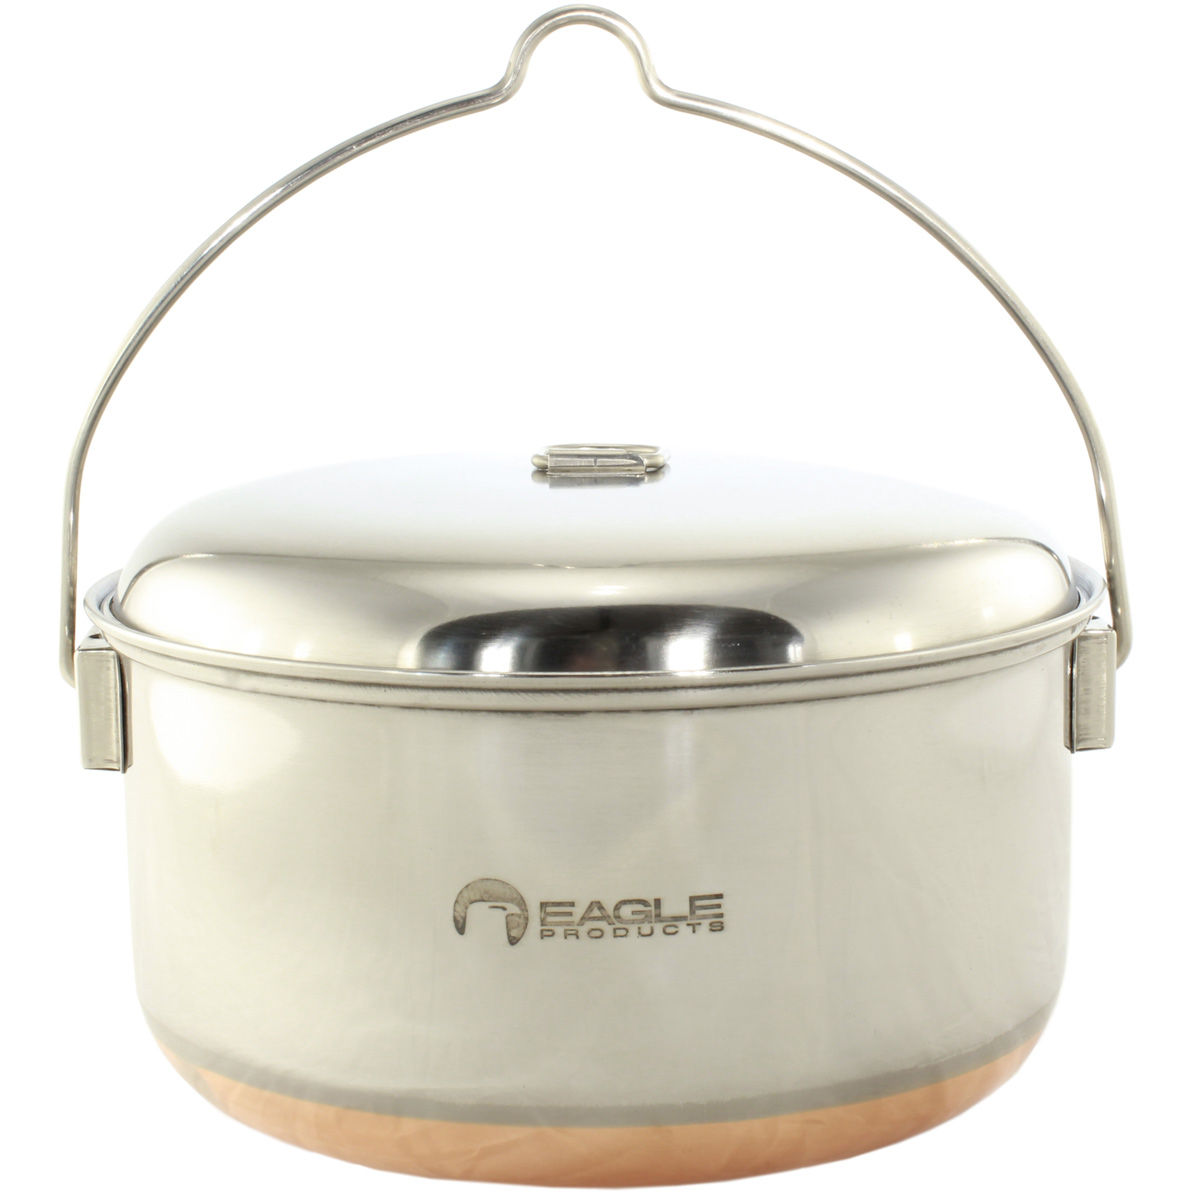 Eagle Products Stainless Steel Pot - 3.2L